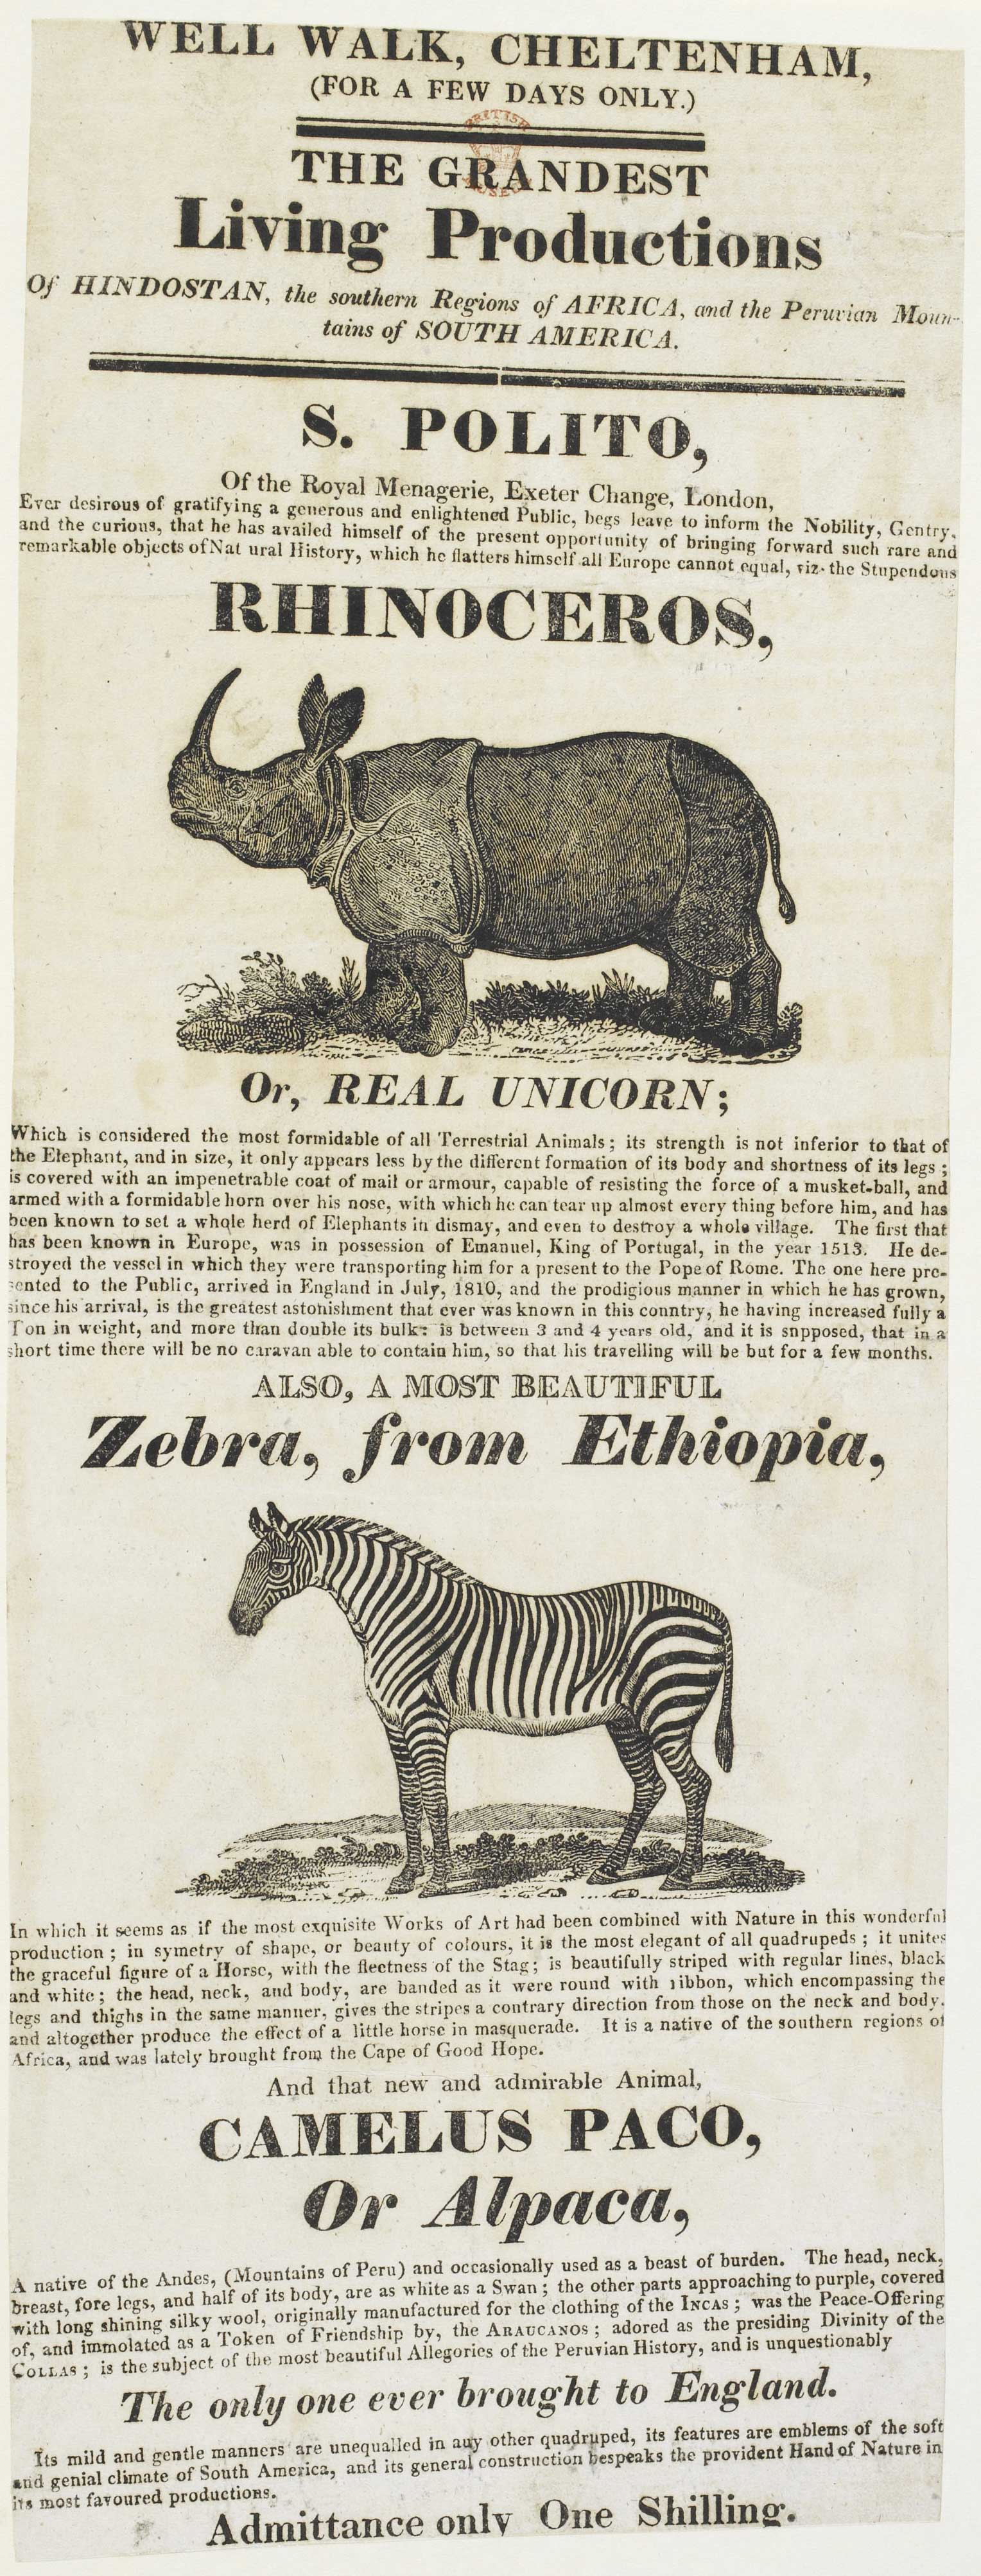 Exhibition of a rhino and zebra